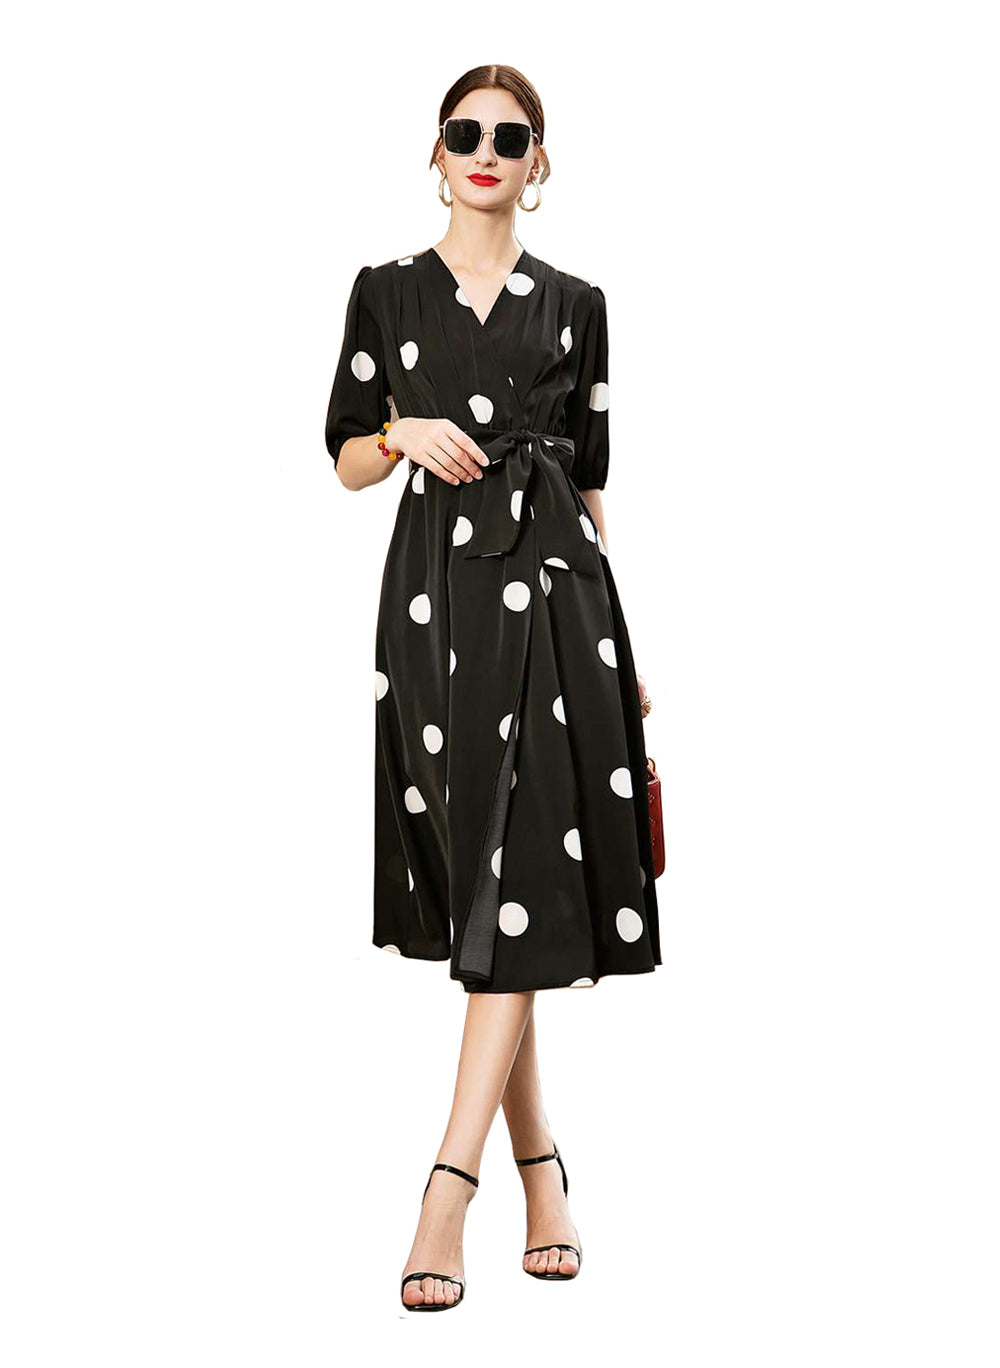 DOAB Polka Dot Print Short Sleeve Wrap Style Midi Dress in Black